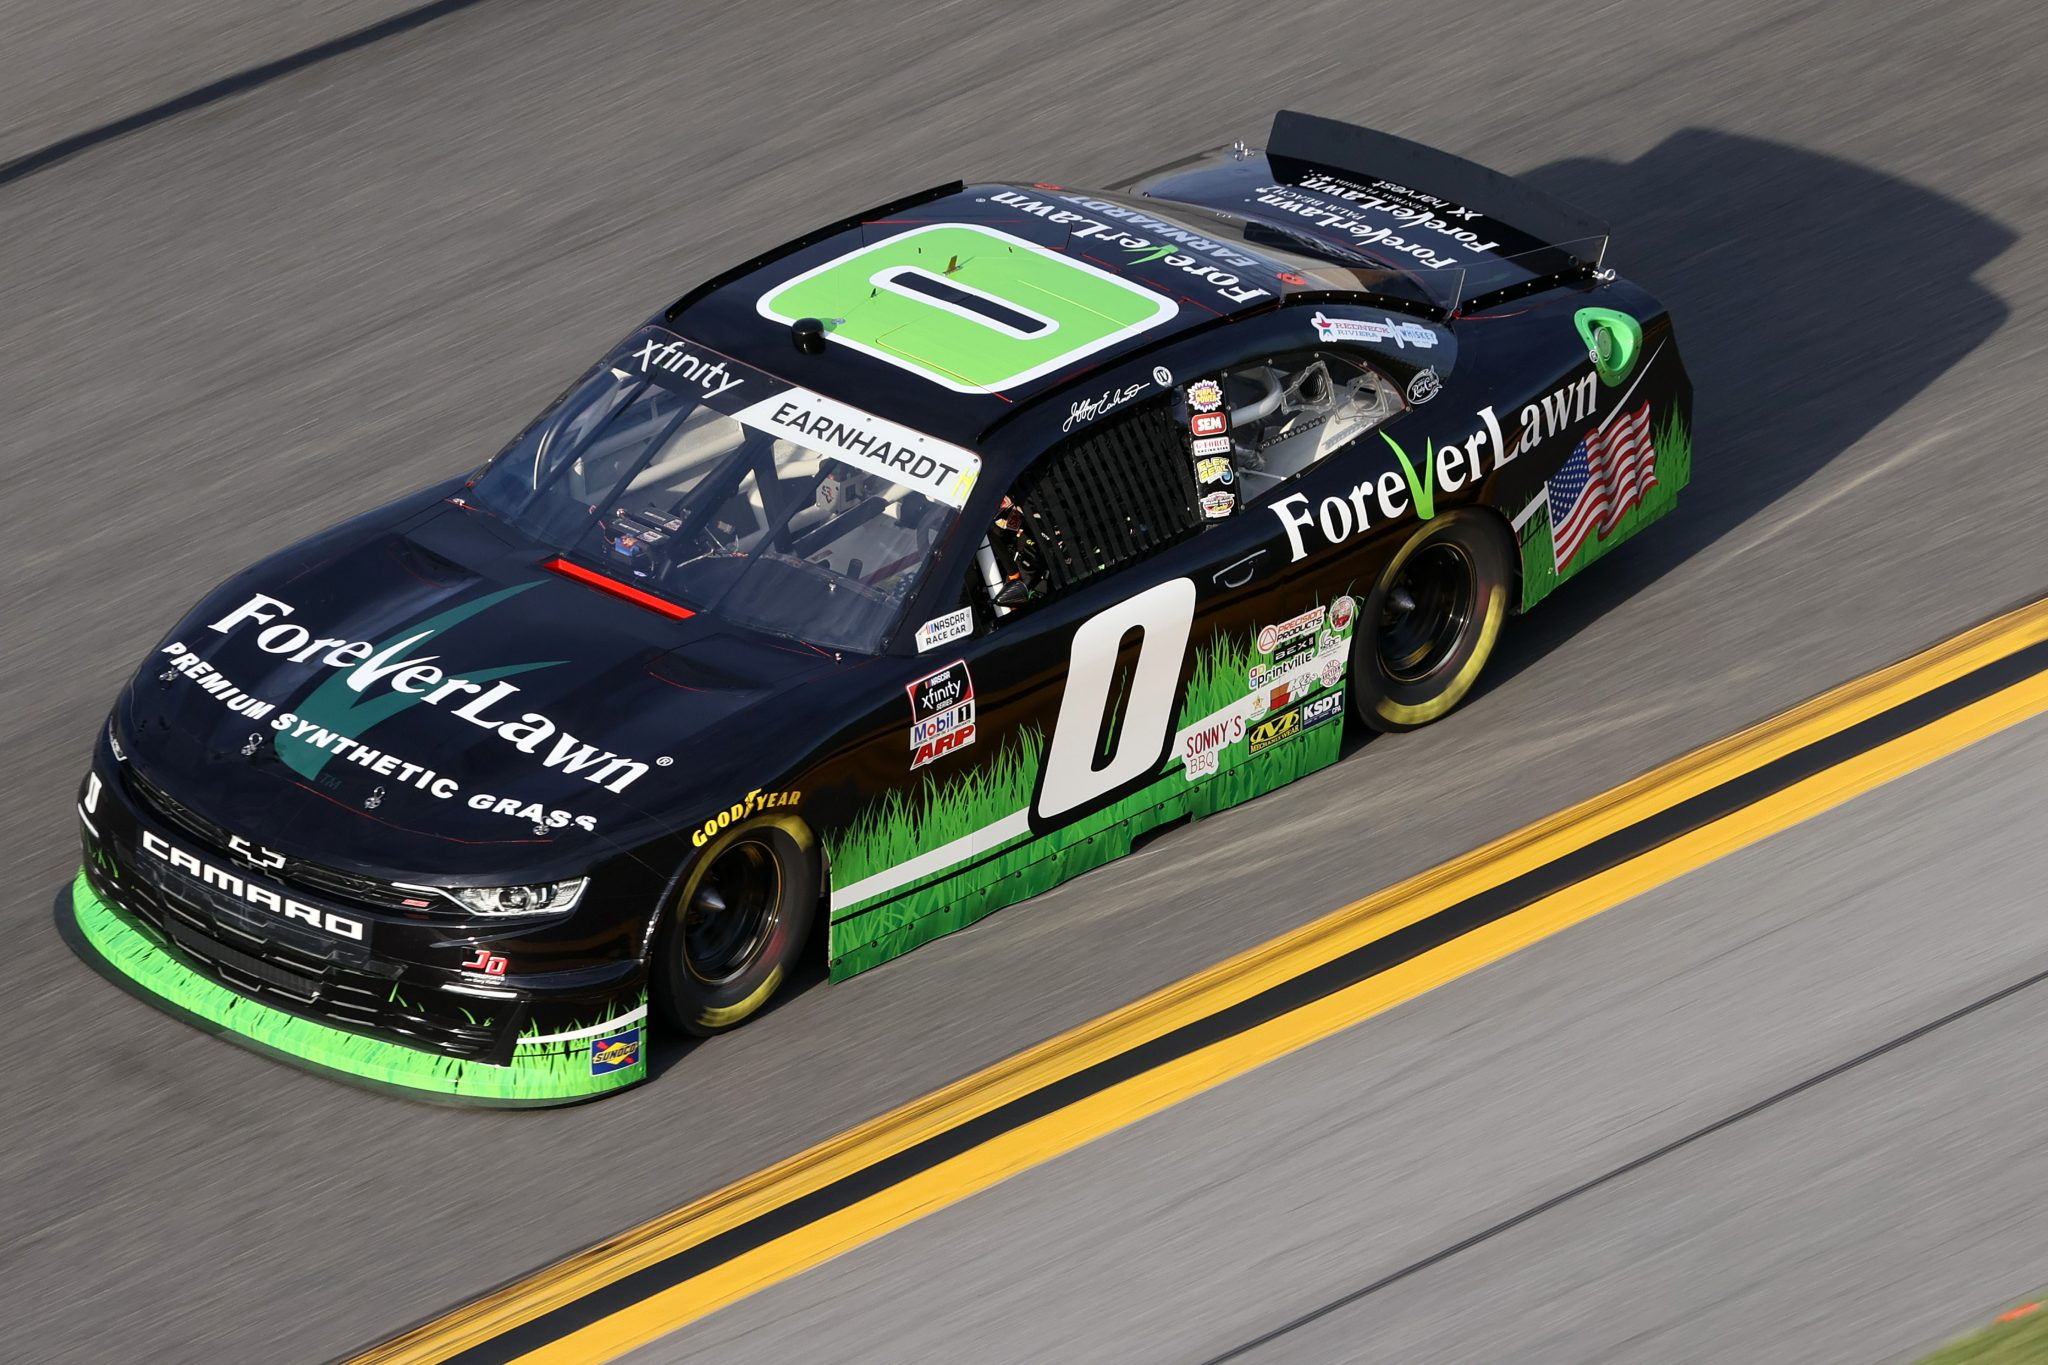 DAYTONA BEACH, FLORIDA - FEBRUARY 12: Jeffrey Earnhardt, driver of the #0 Forever Lawn Chevrolet, practices for the NASCAR Xfinity Series Beef. It's What's For Dinner. 300 at Daytona International Speedway on February 12, 2021 in Daytona Beach, Florida. (Photo by James Gilbert/Getty Images) | Getty Images